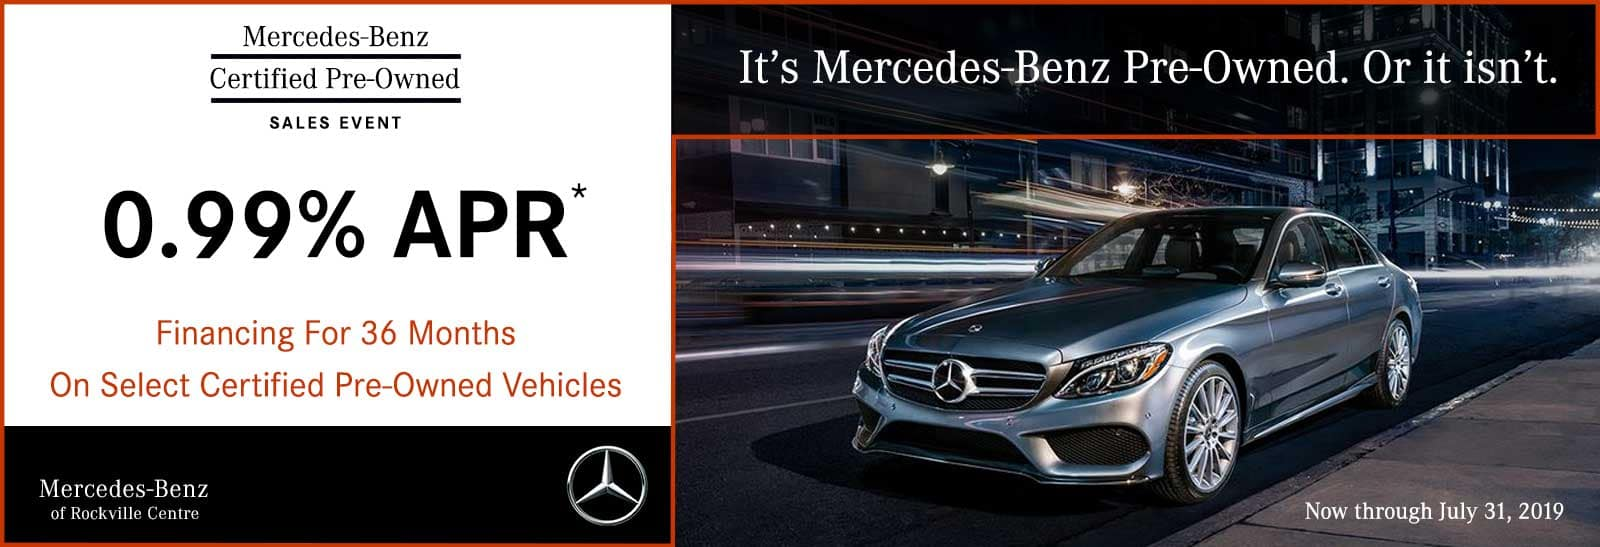 Mercedes Benz Lease Deals 0 Down >> Pre Owned Mercedes Benz Specials Mercedes Benz Of Rockville Centre